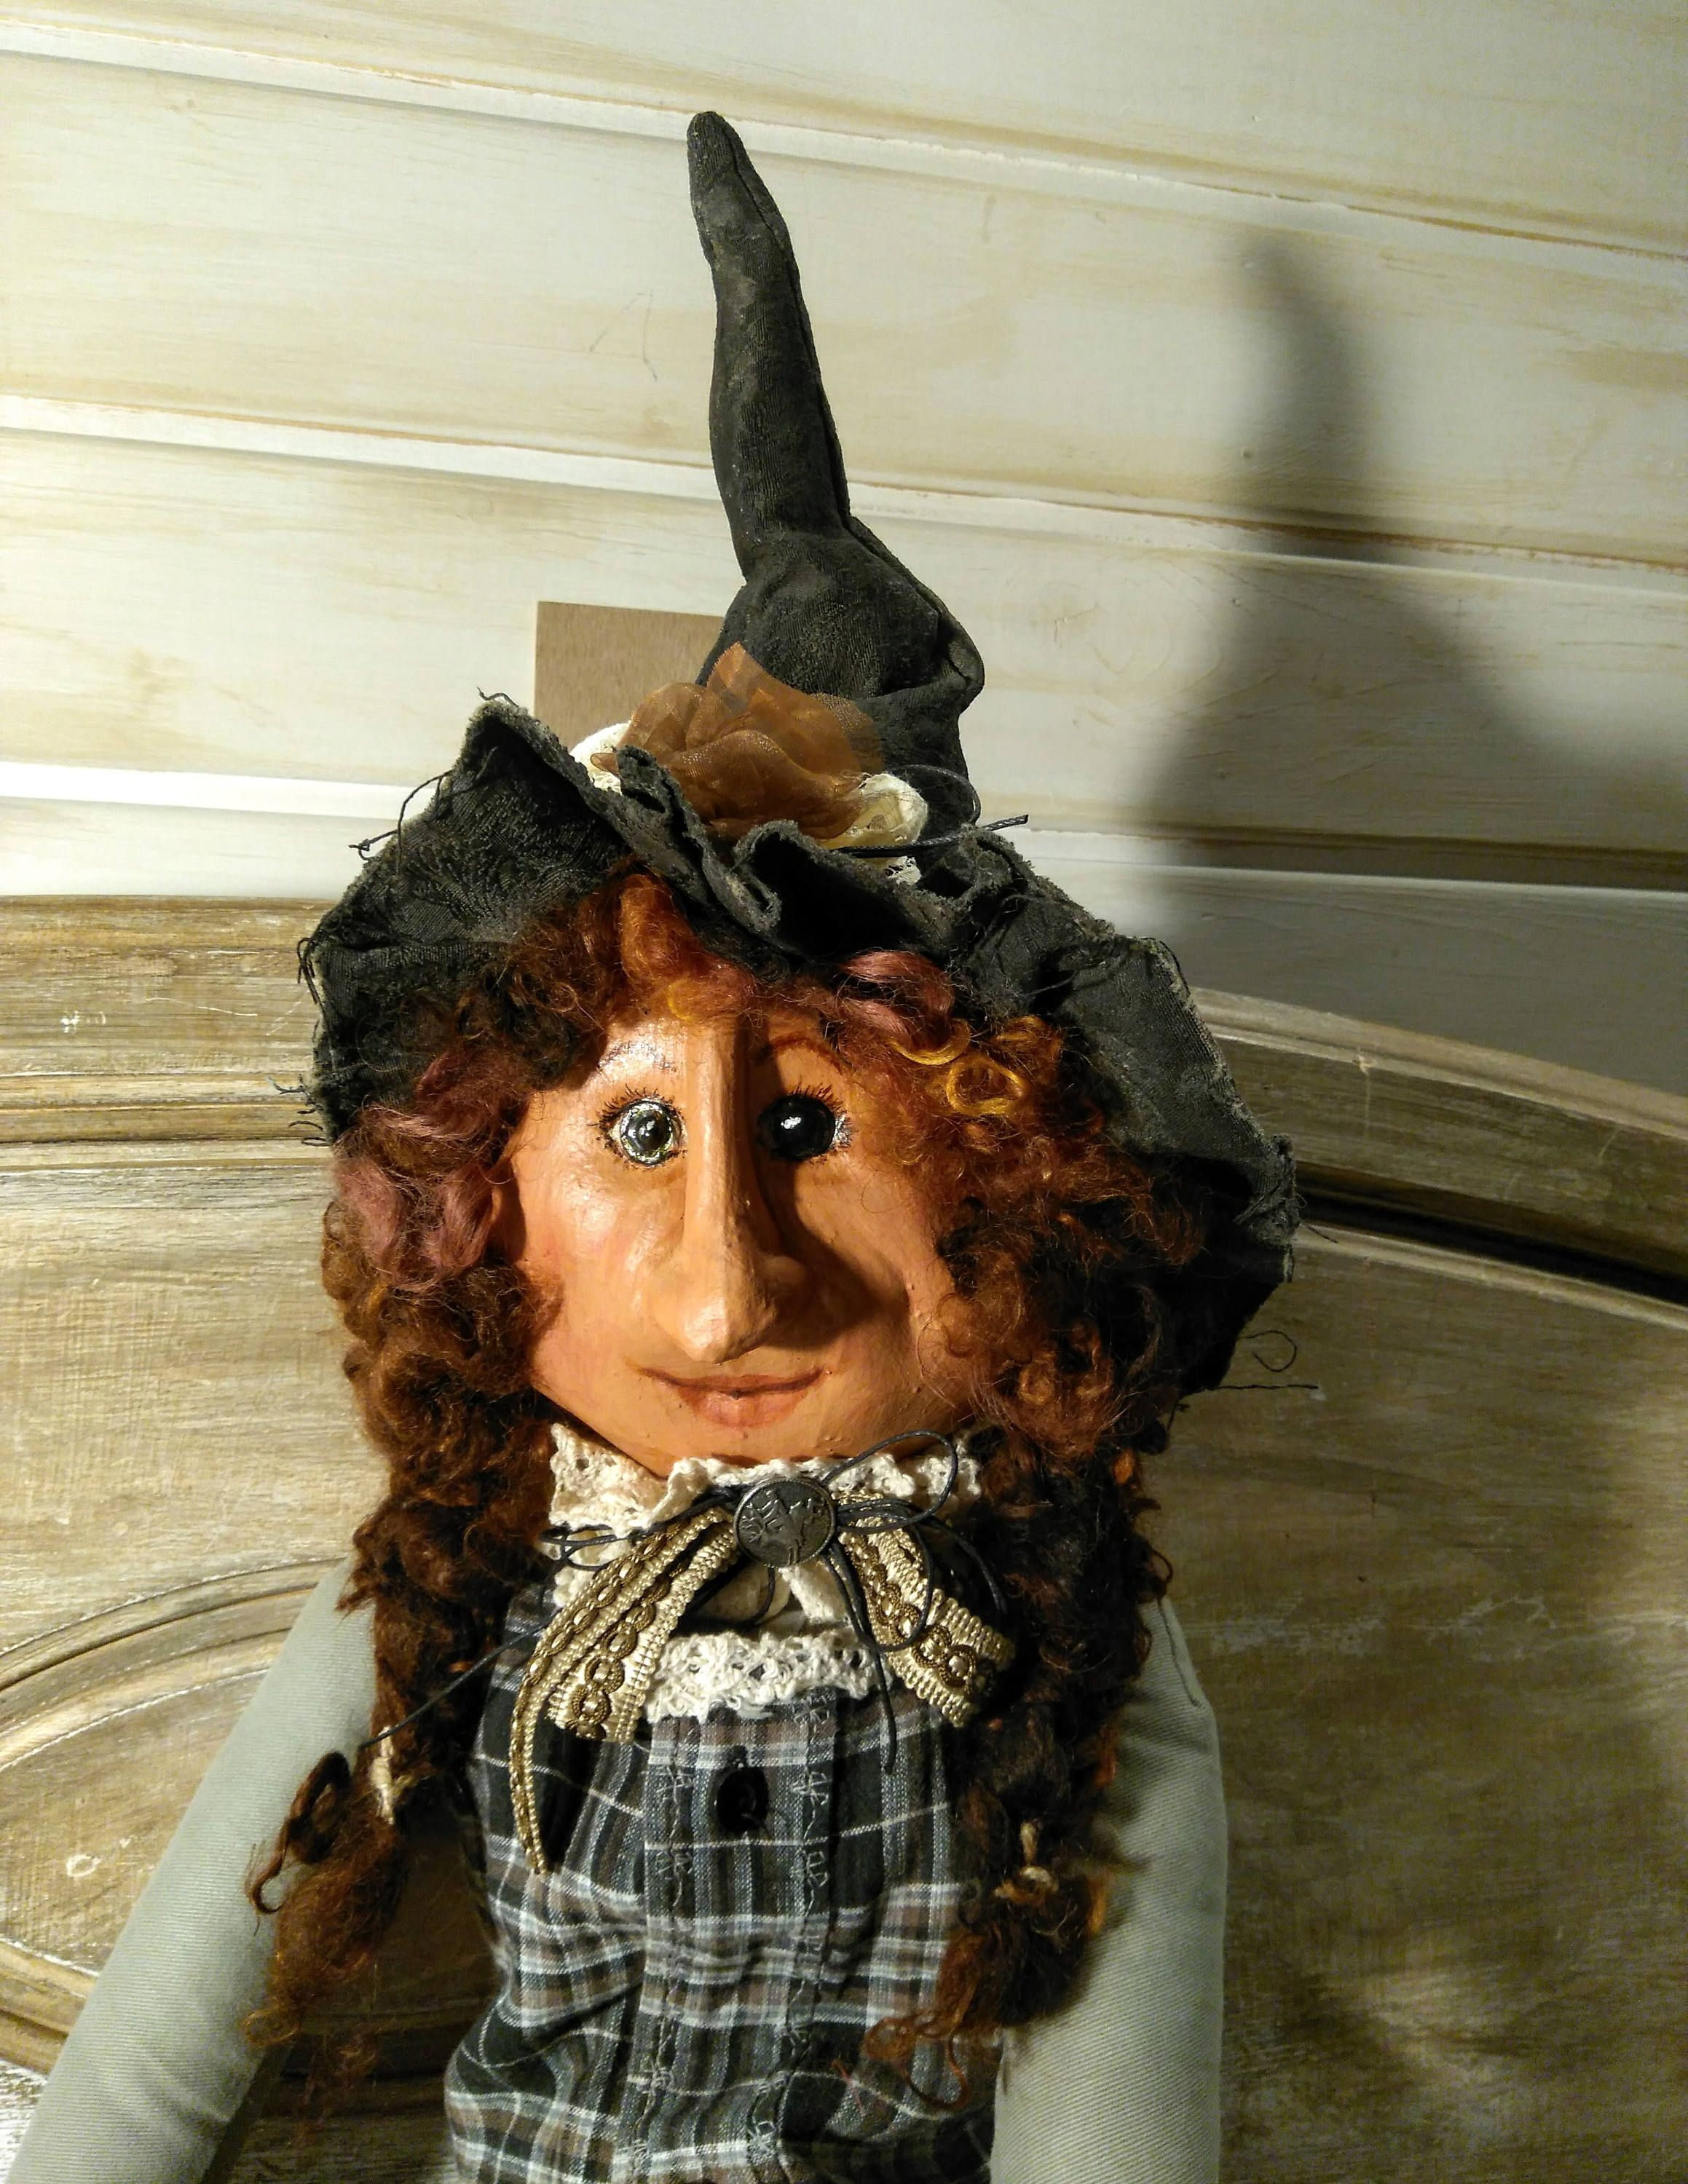 Primitive Witch - Handmade Doll - Primitive - Halloween Decor - Art - Primitive Halloween Decor